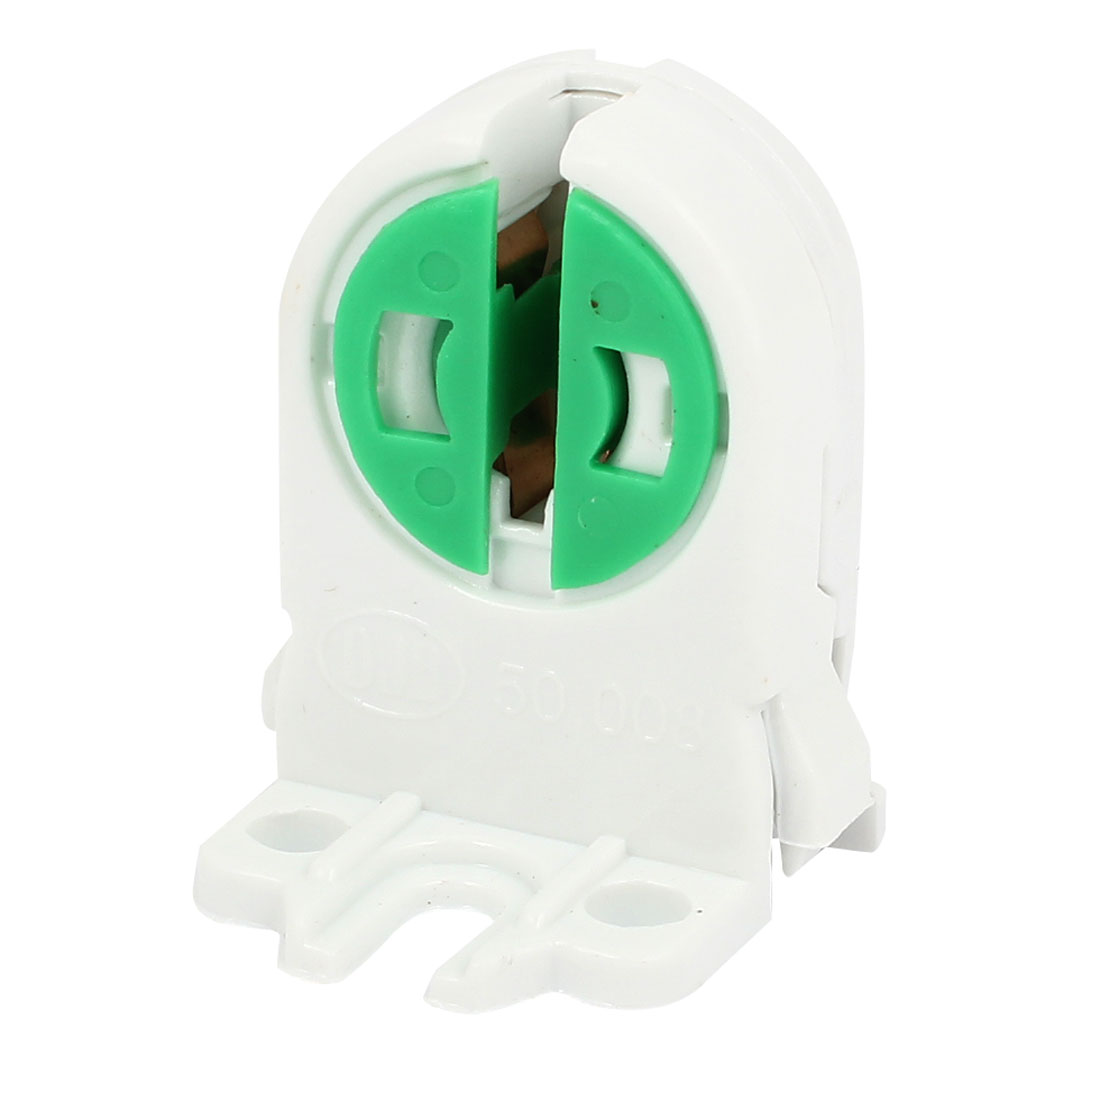 AC 100-250V White Green T5 Fluorescent LED Tube Lamp Holder